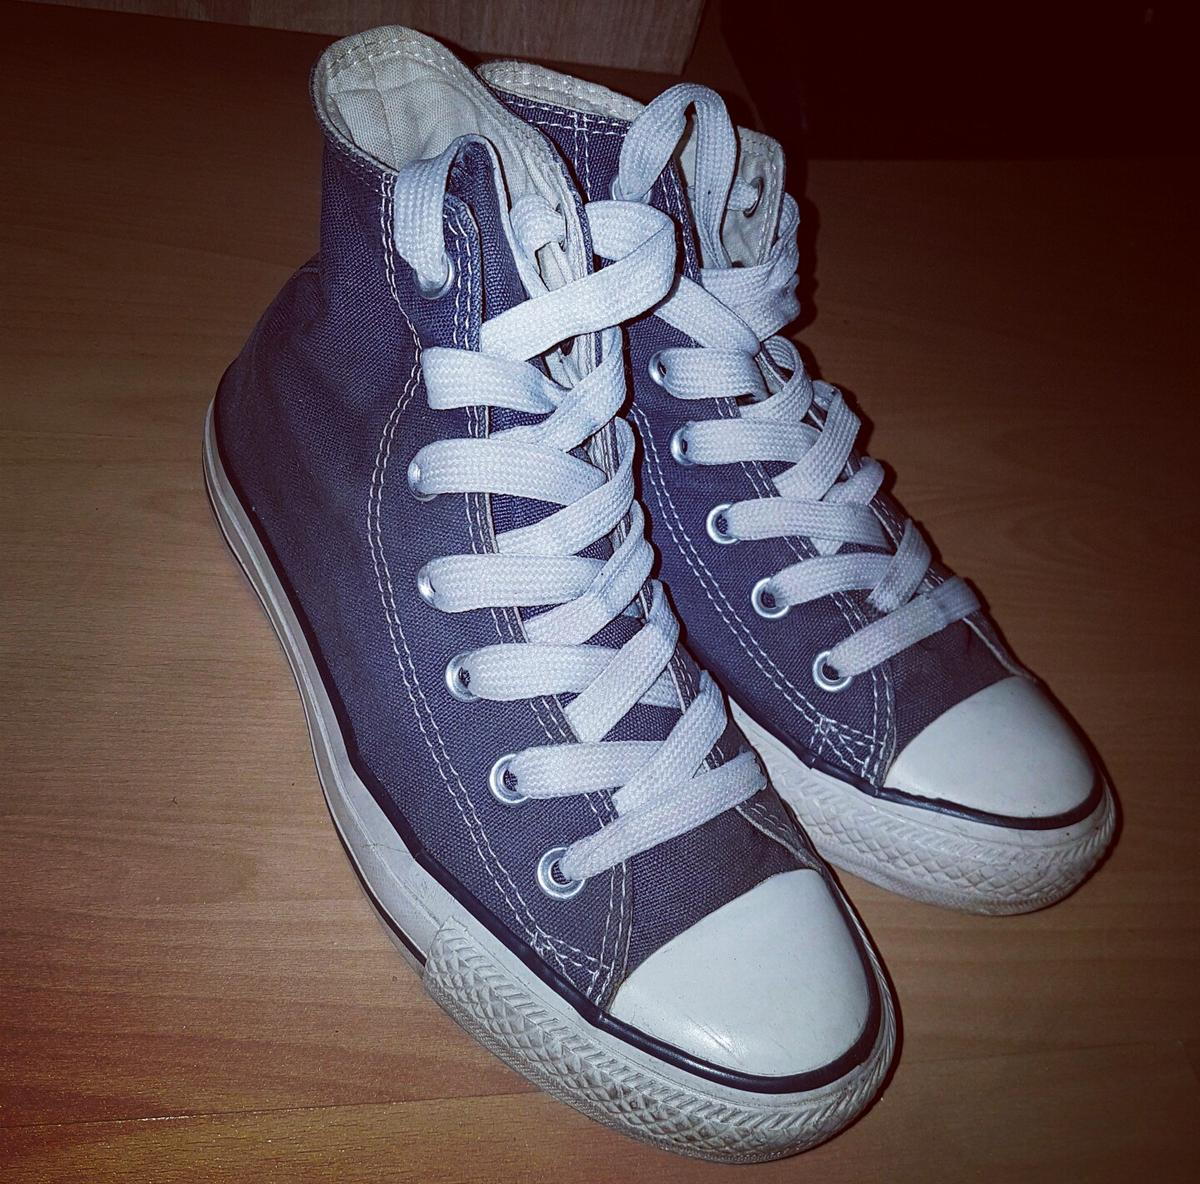 7abe342489089 Converse Chucks in 60316 Frankfurt am Main for €20.00 for sale - Shpock